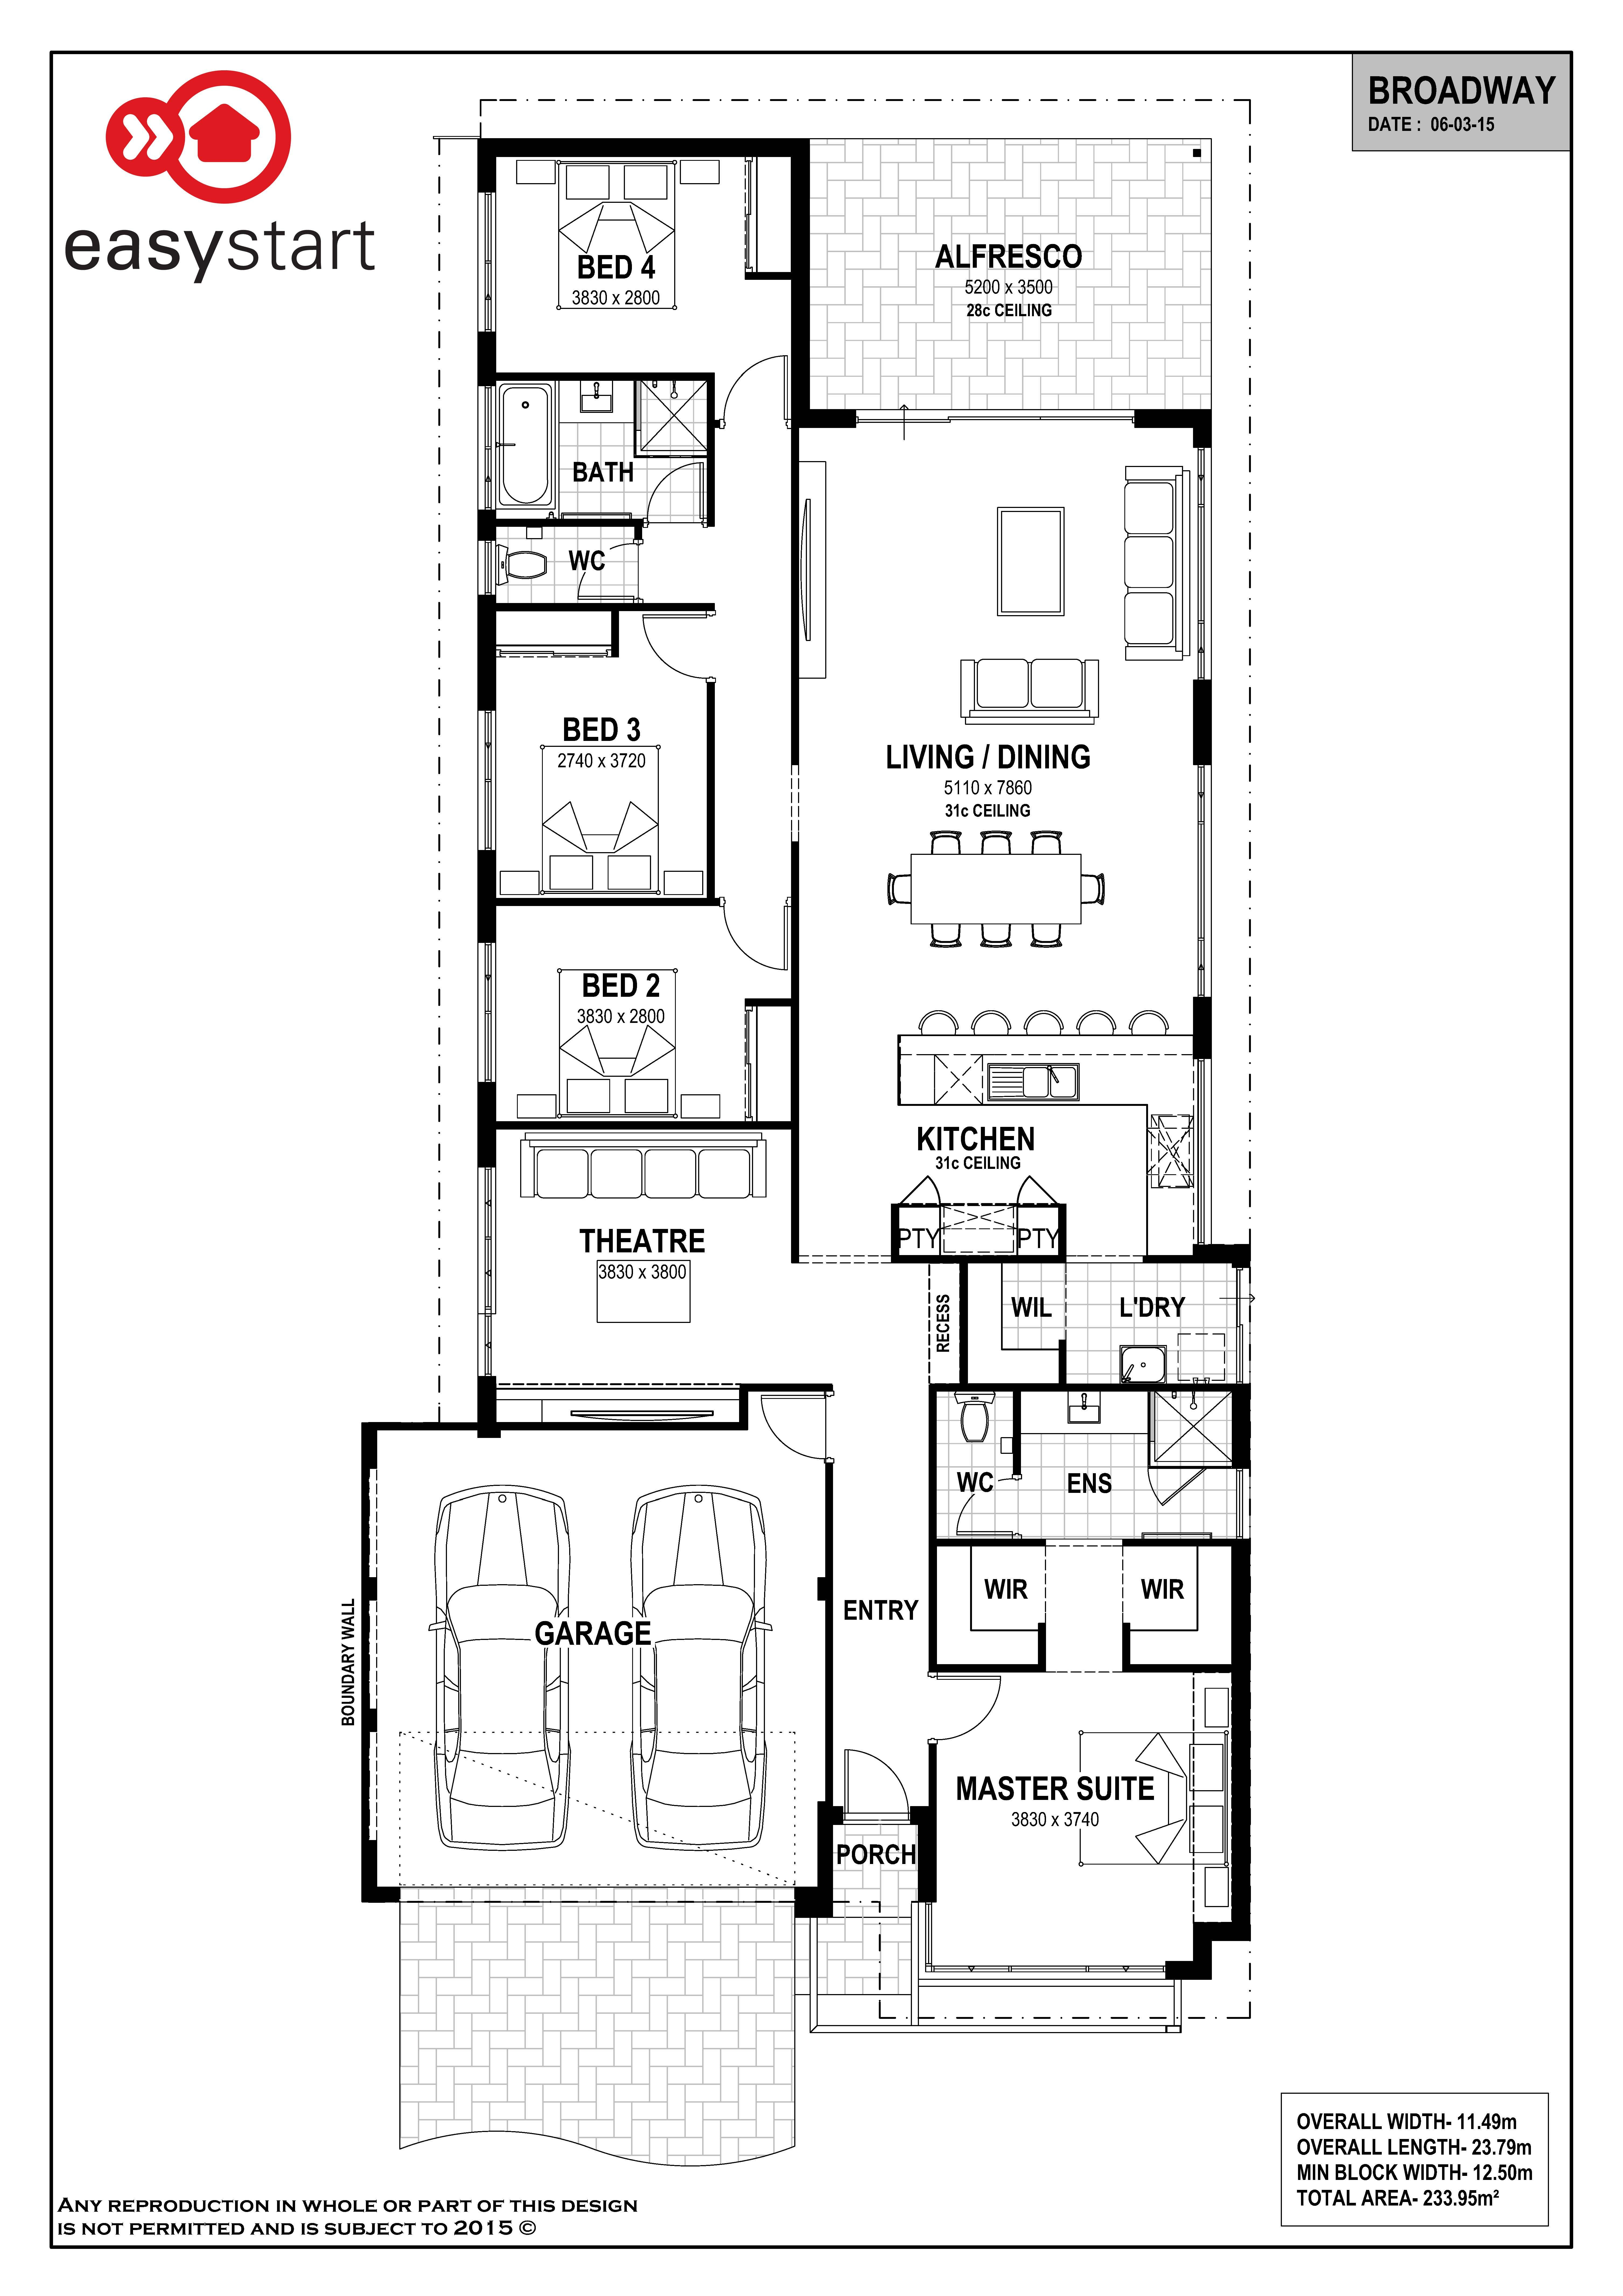 The Broadway Is A Spacious Home With The Living And